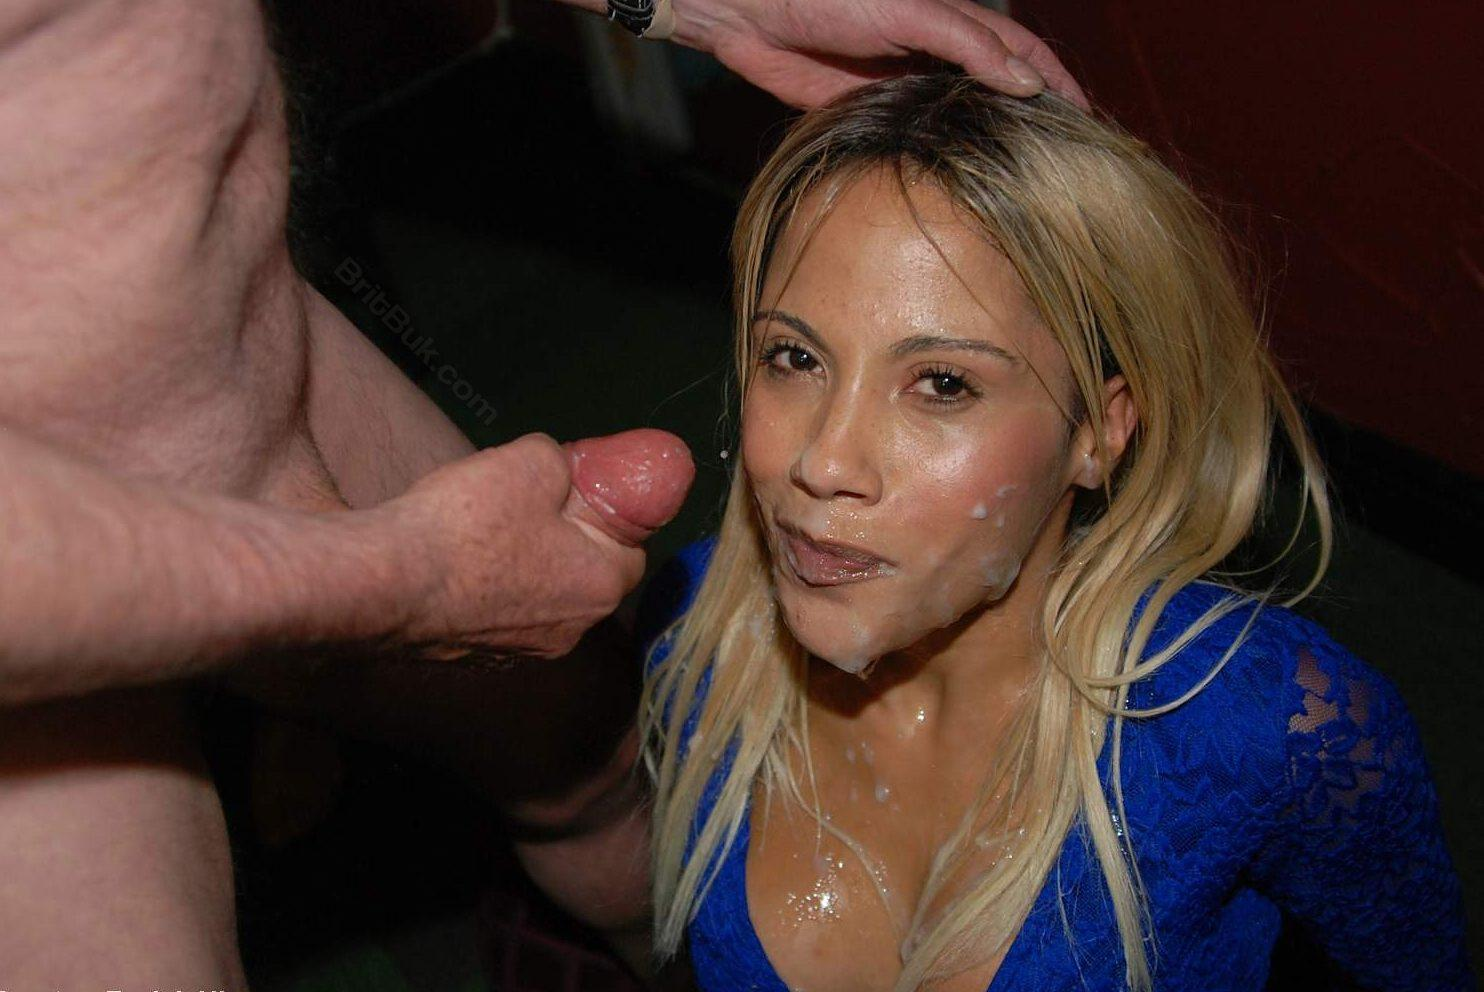 amateurfacialsuk britbuk SiennaKane BubblesofCum 118  Sienna Kane: Bubbles of Cum Bukkake , Amateur British Bukkake